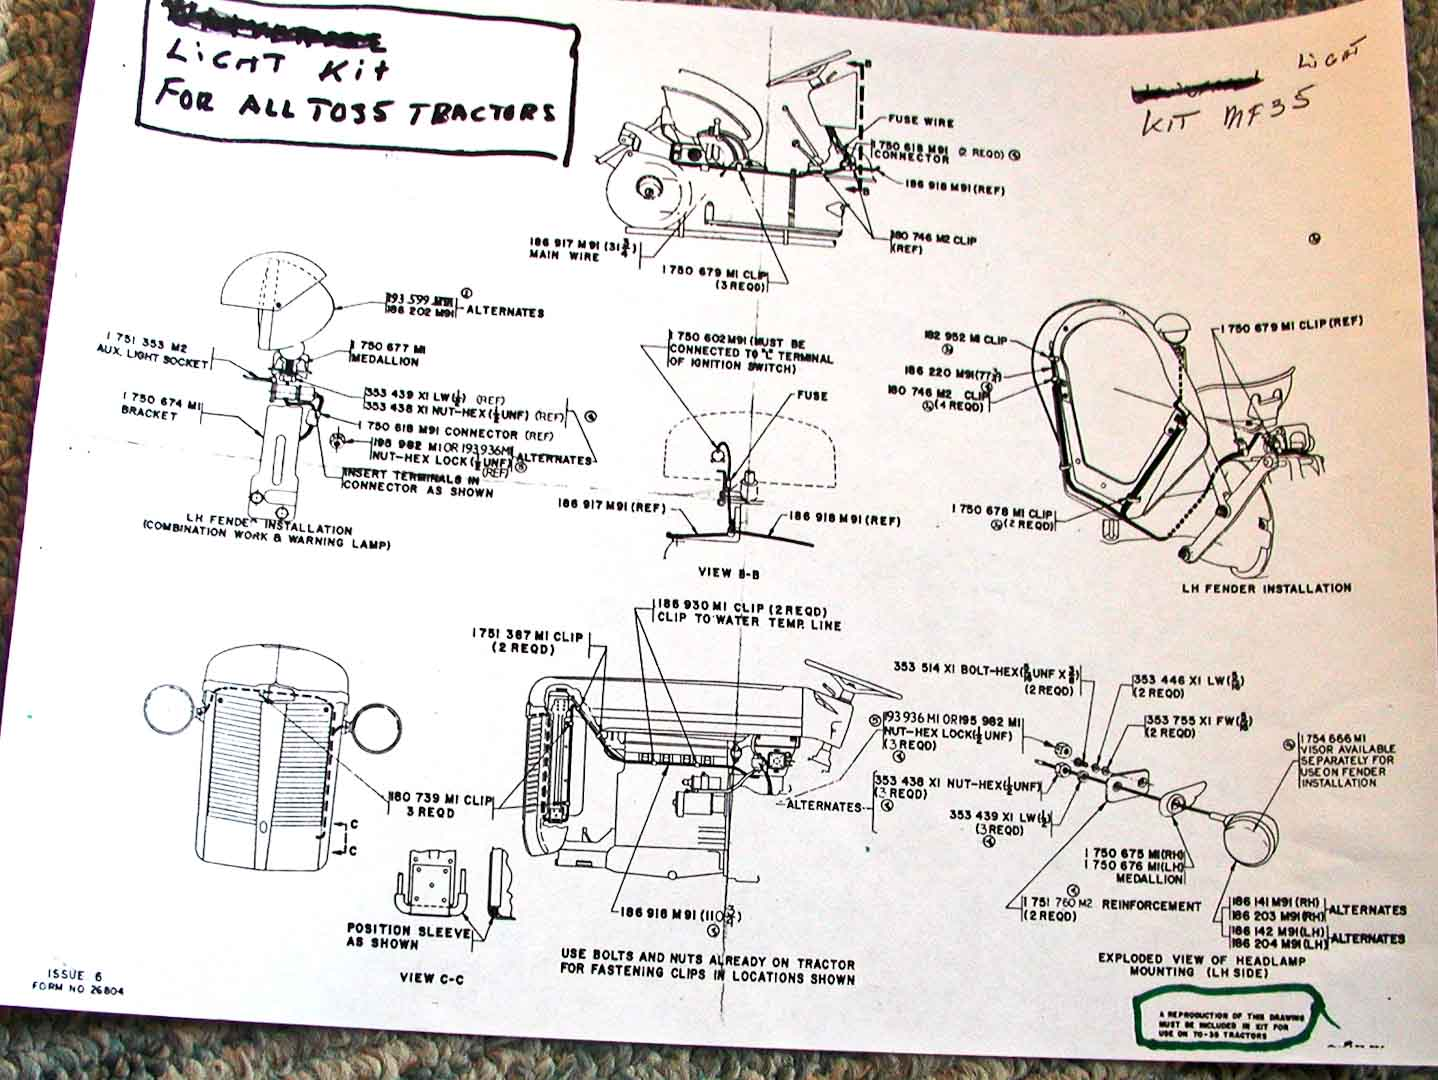 Electrical and Lighting Diagrams - Ferguson Enthusiasts of North AmericaFerguson Enthusiasts of North America